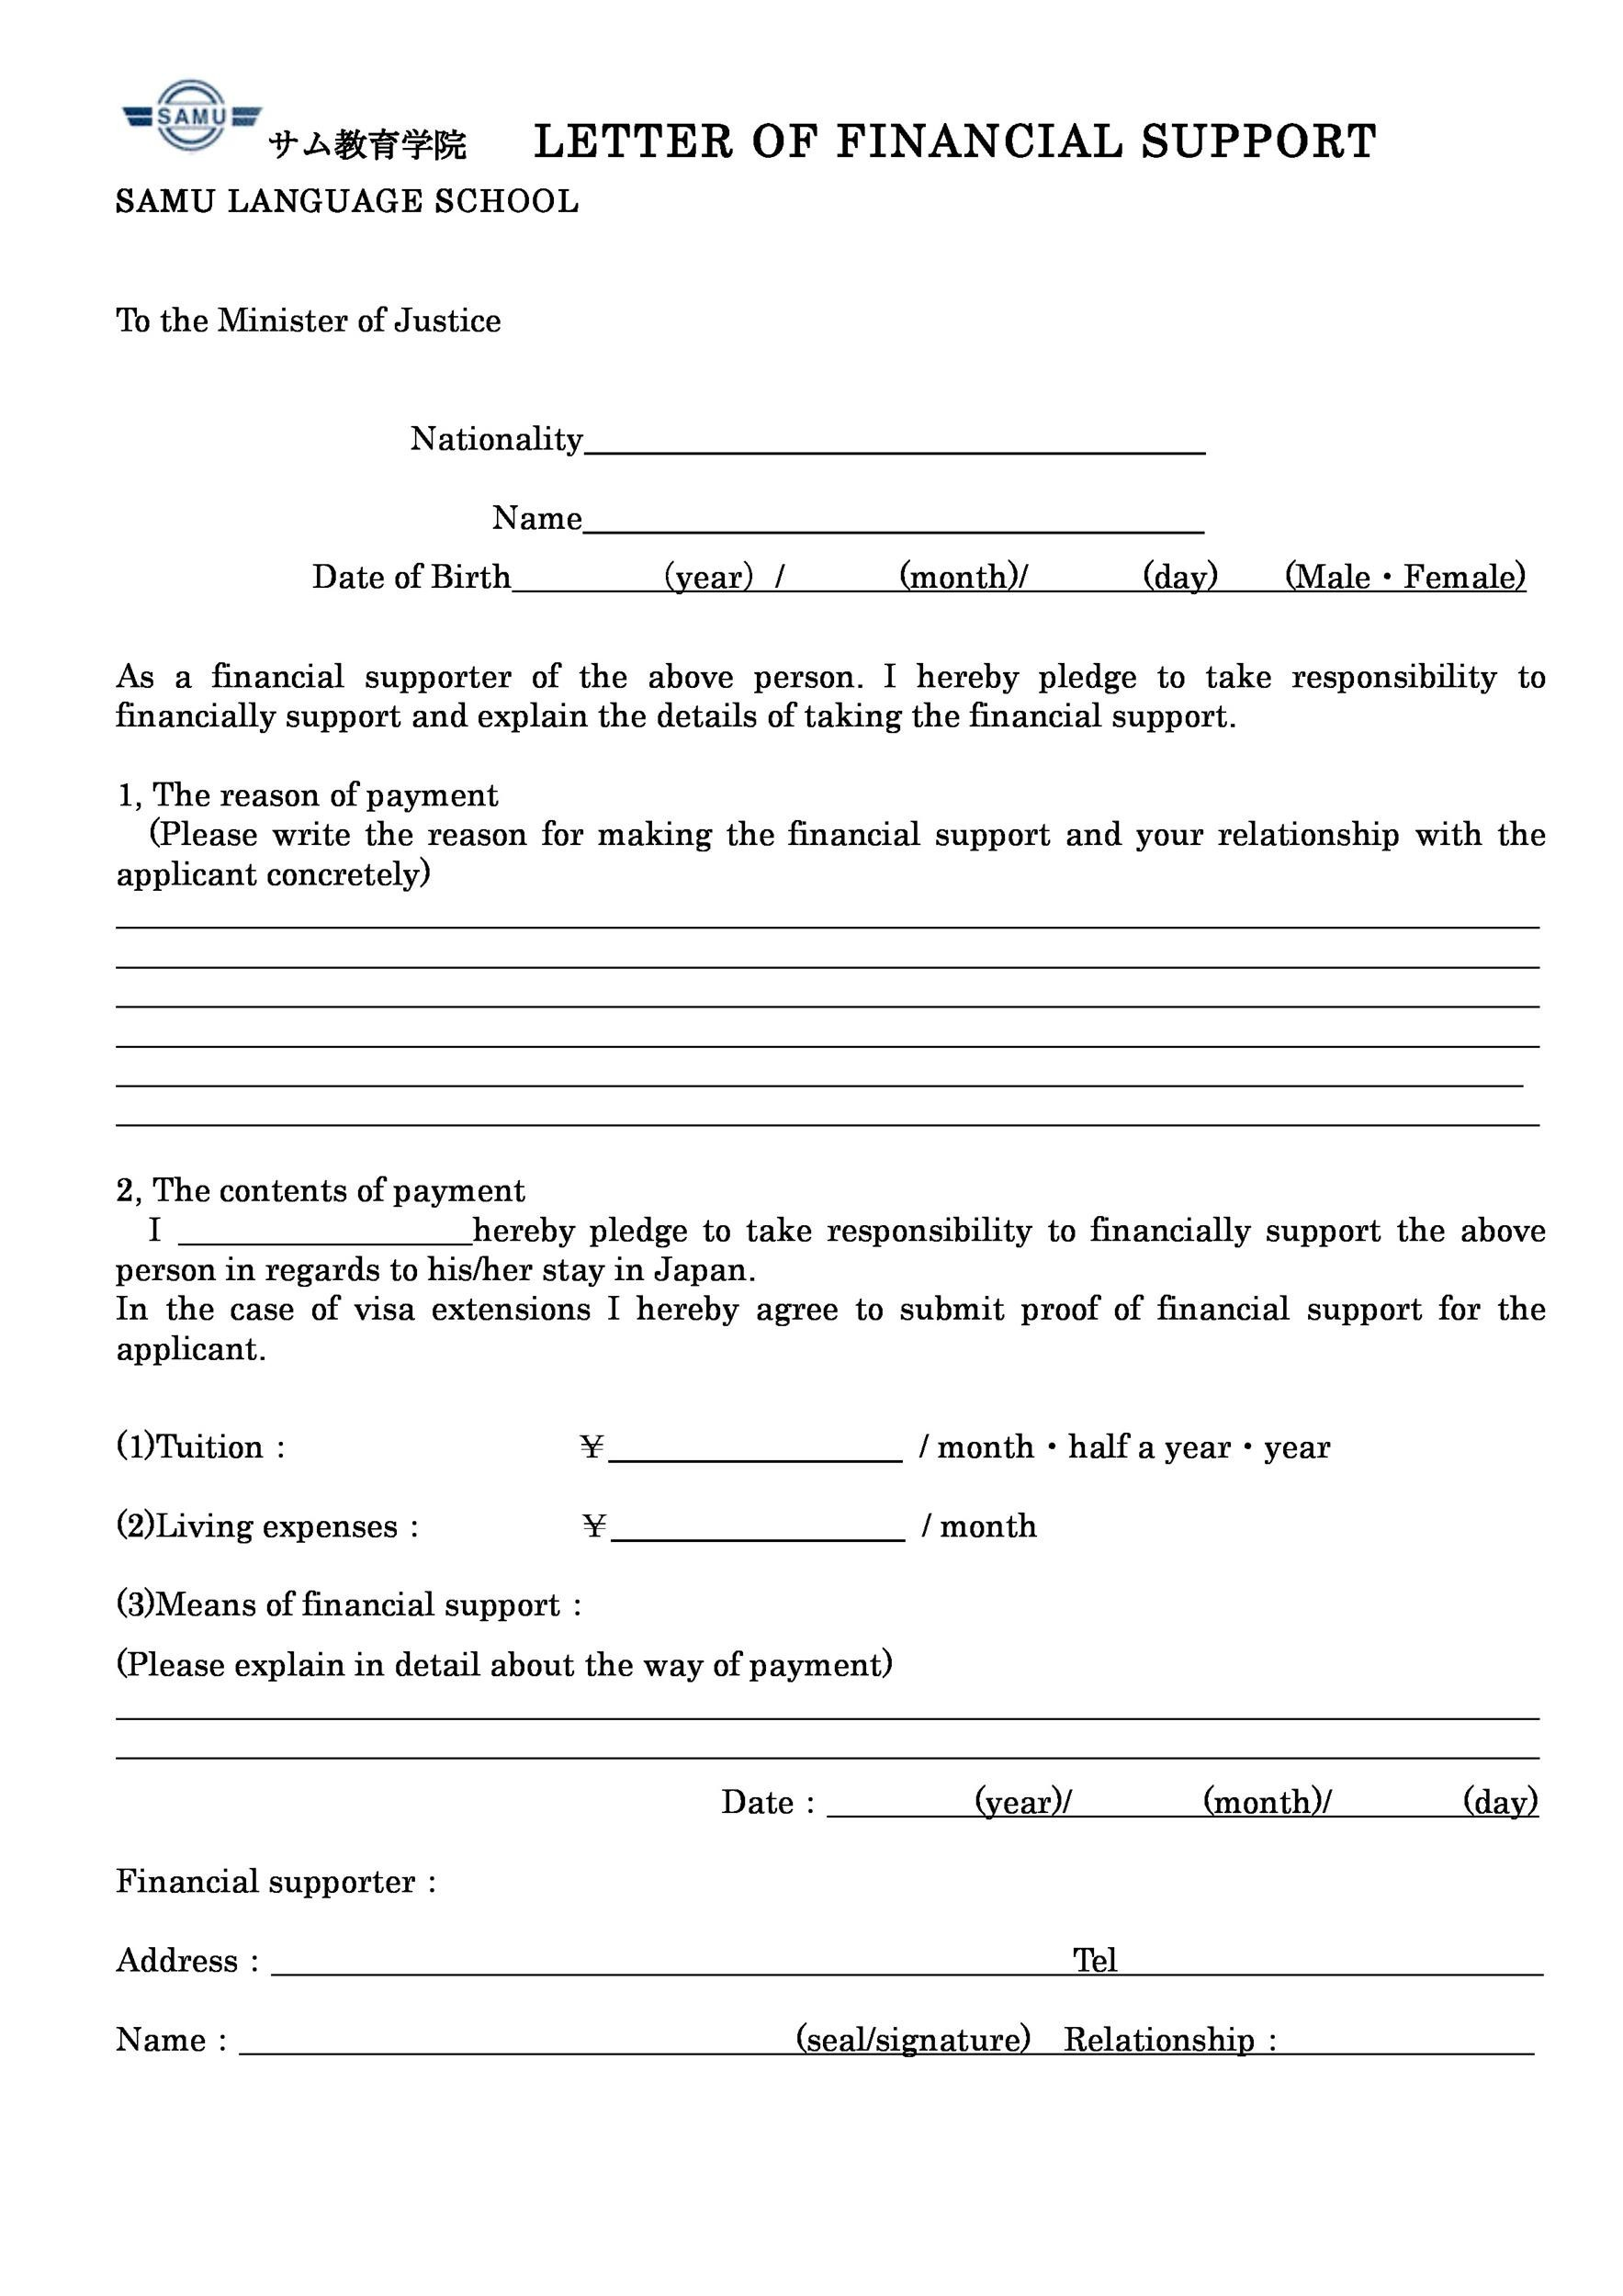 40 Proven Letter Of Support Templates Financial For Grant